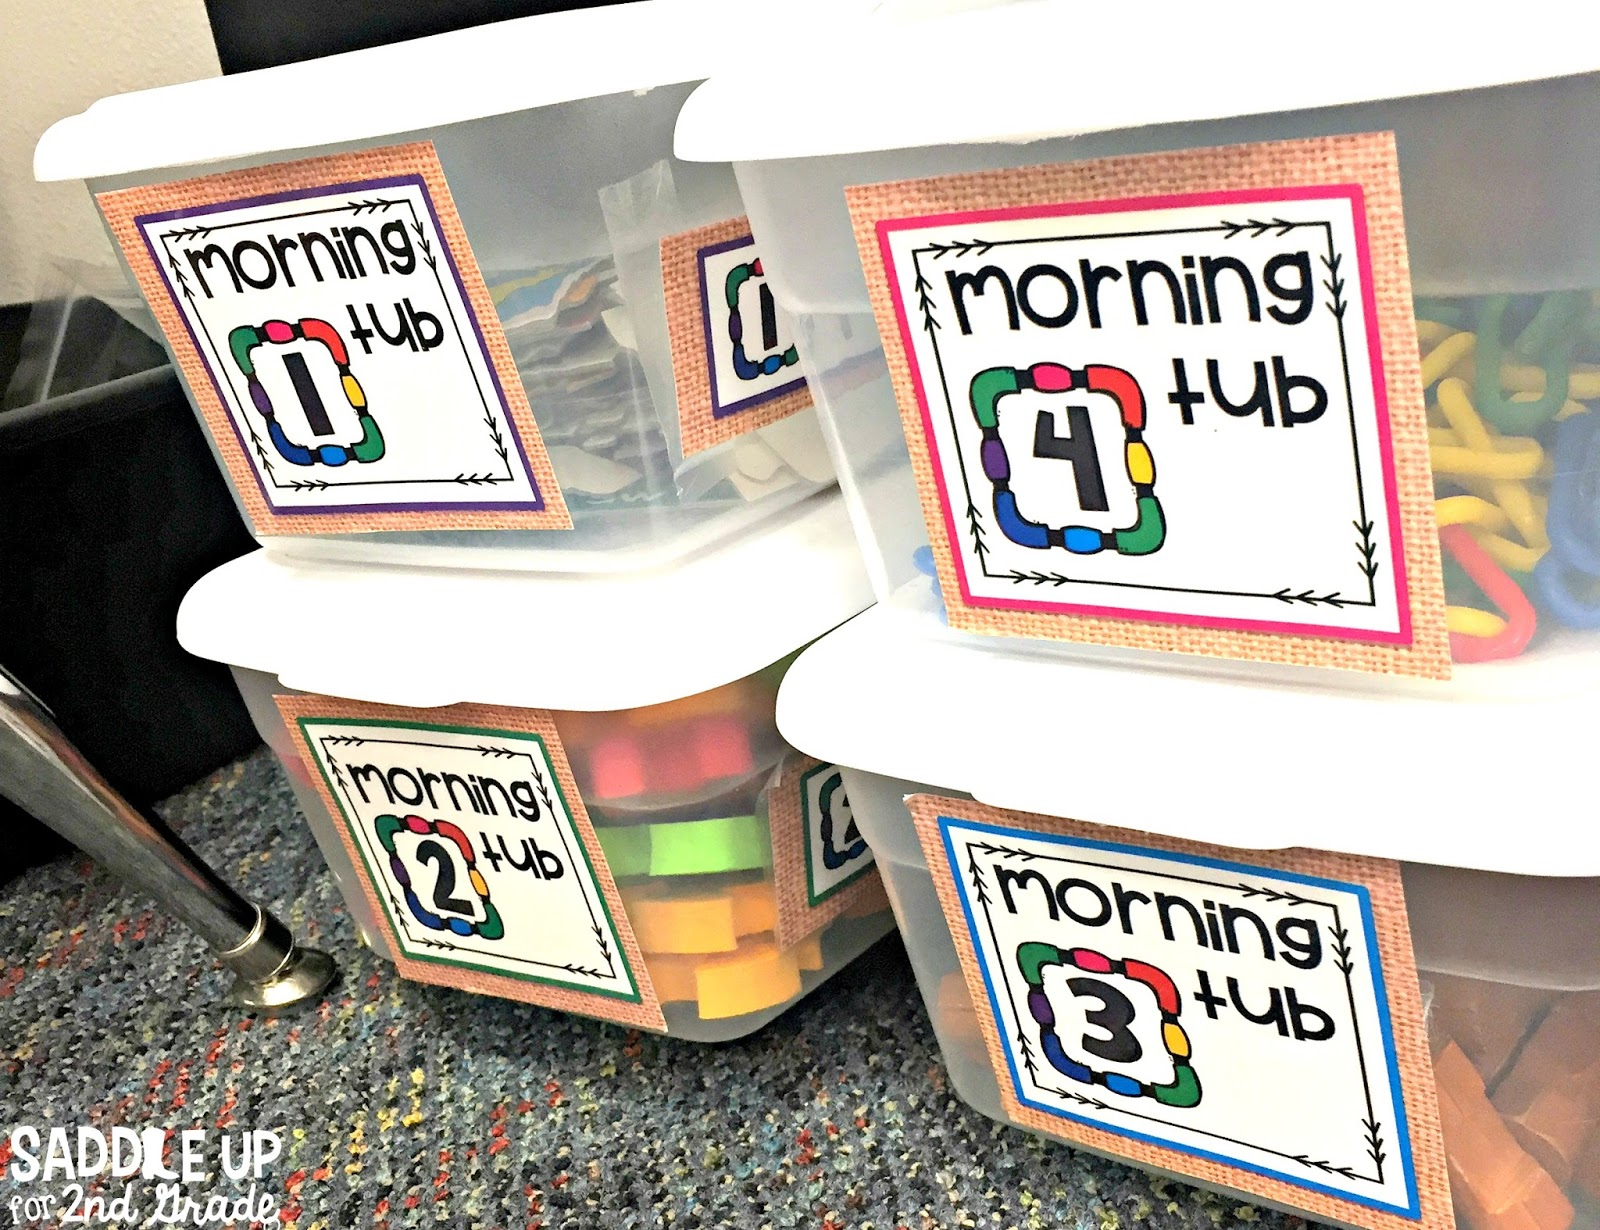 Morning Tubs have taken the place of traditional morning work in my classroom. This blog post features items from Oriental Trading that have allowed students to explore the power of learning through play.